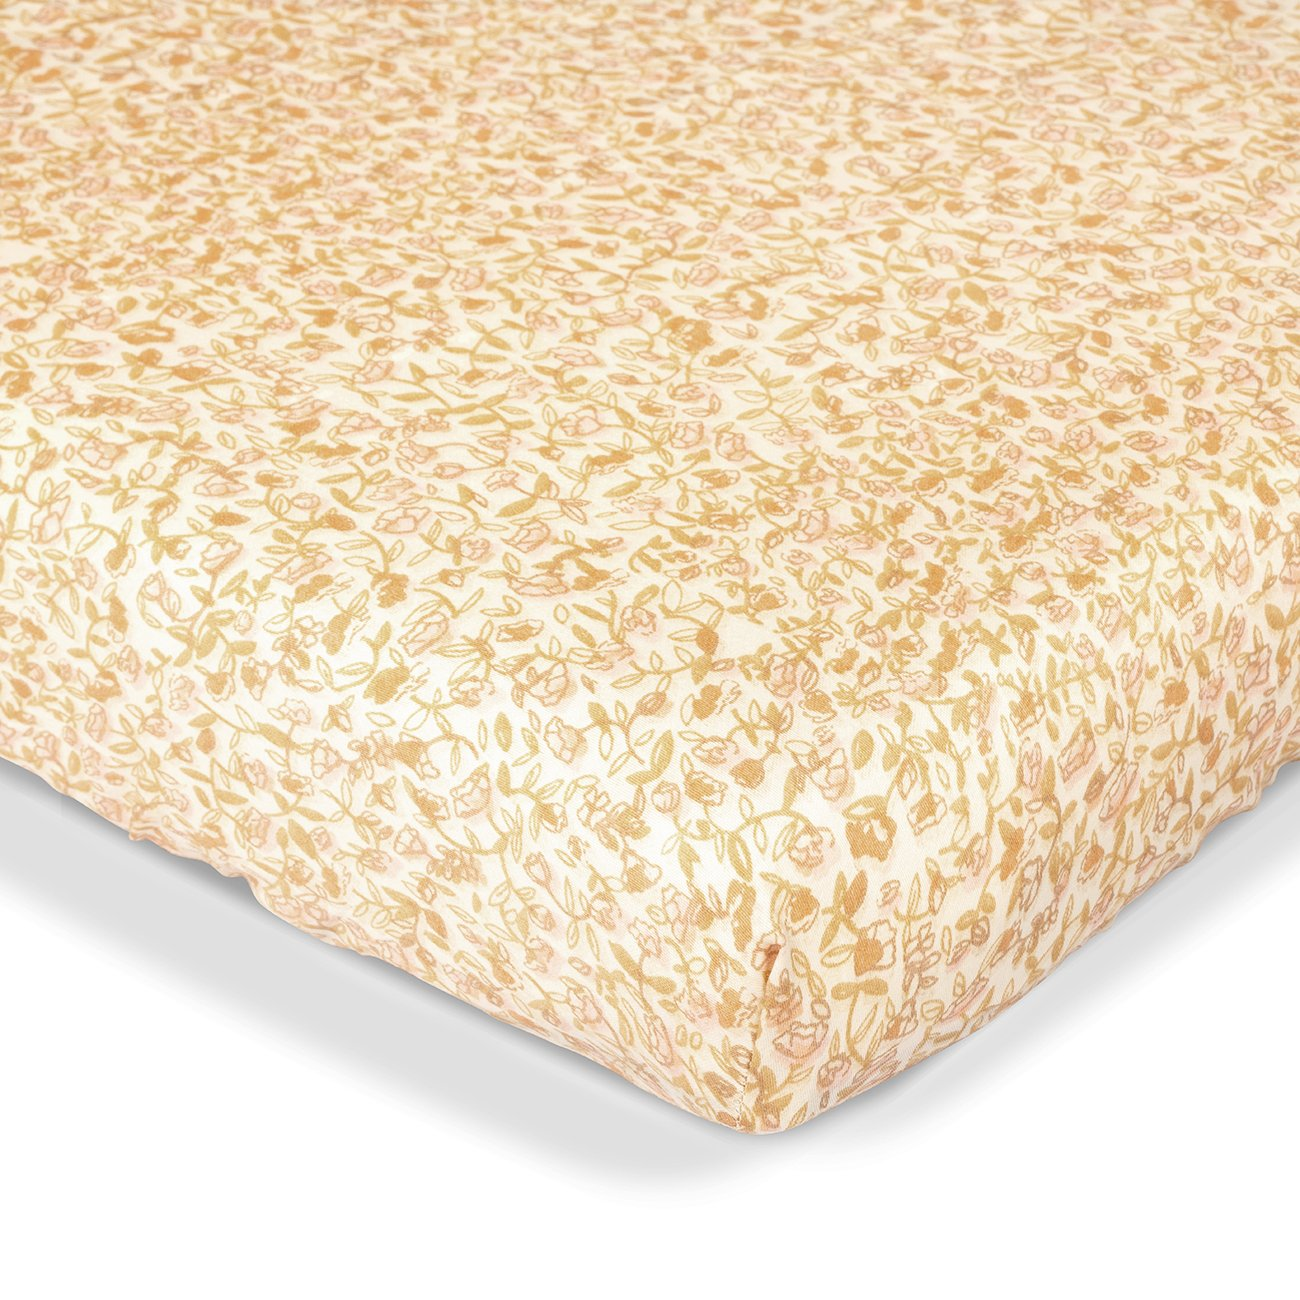 That's Mine - Bed Sheet Junior 70 x 160 cm - Sea Shell (SS225)